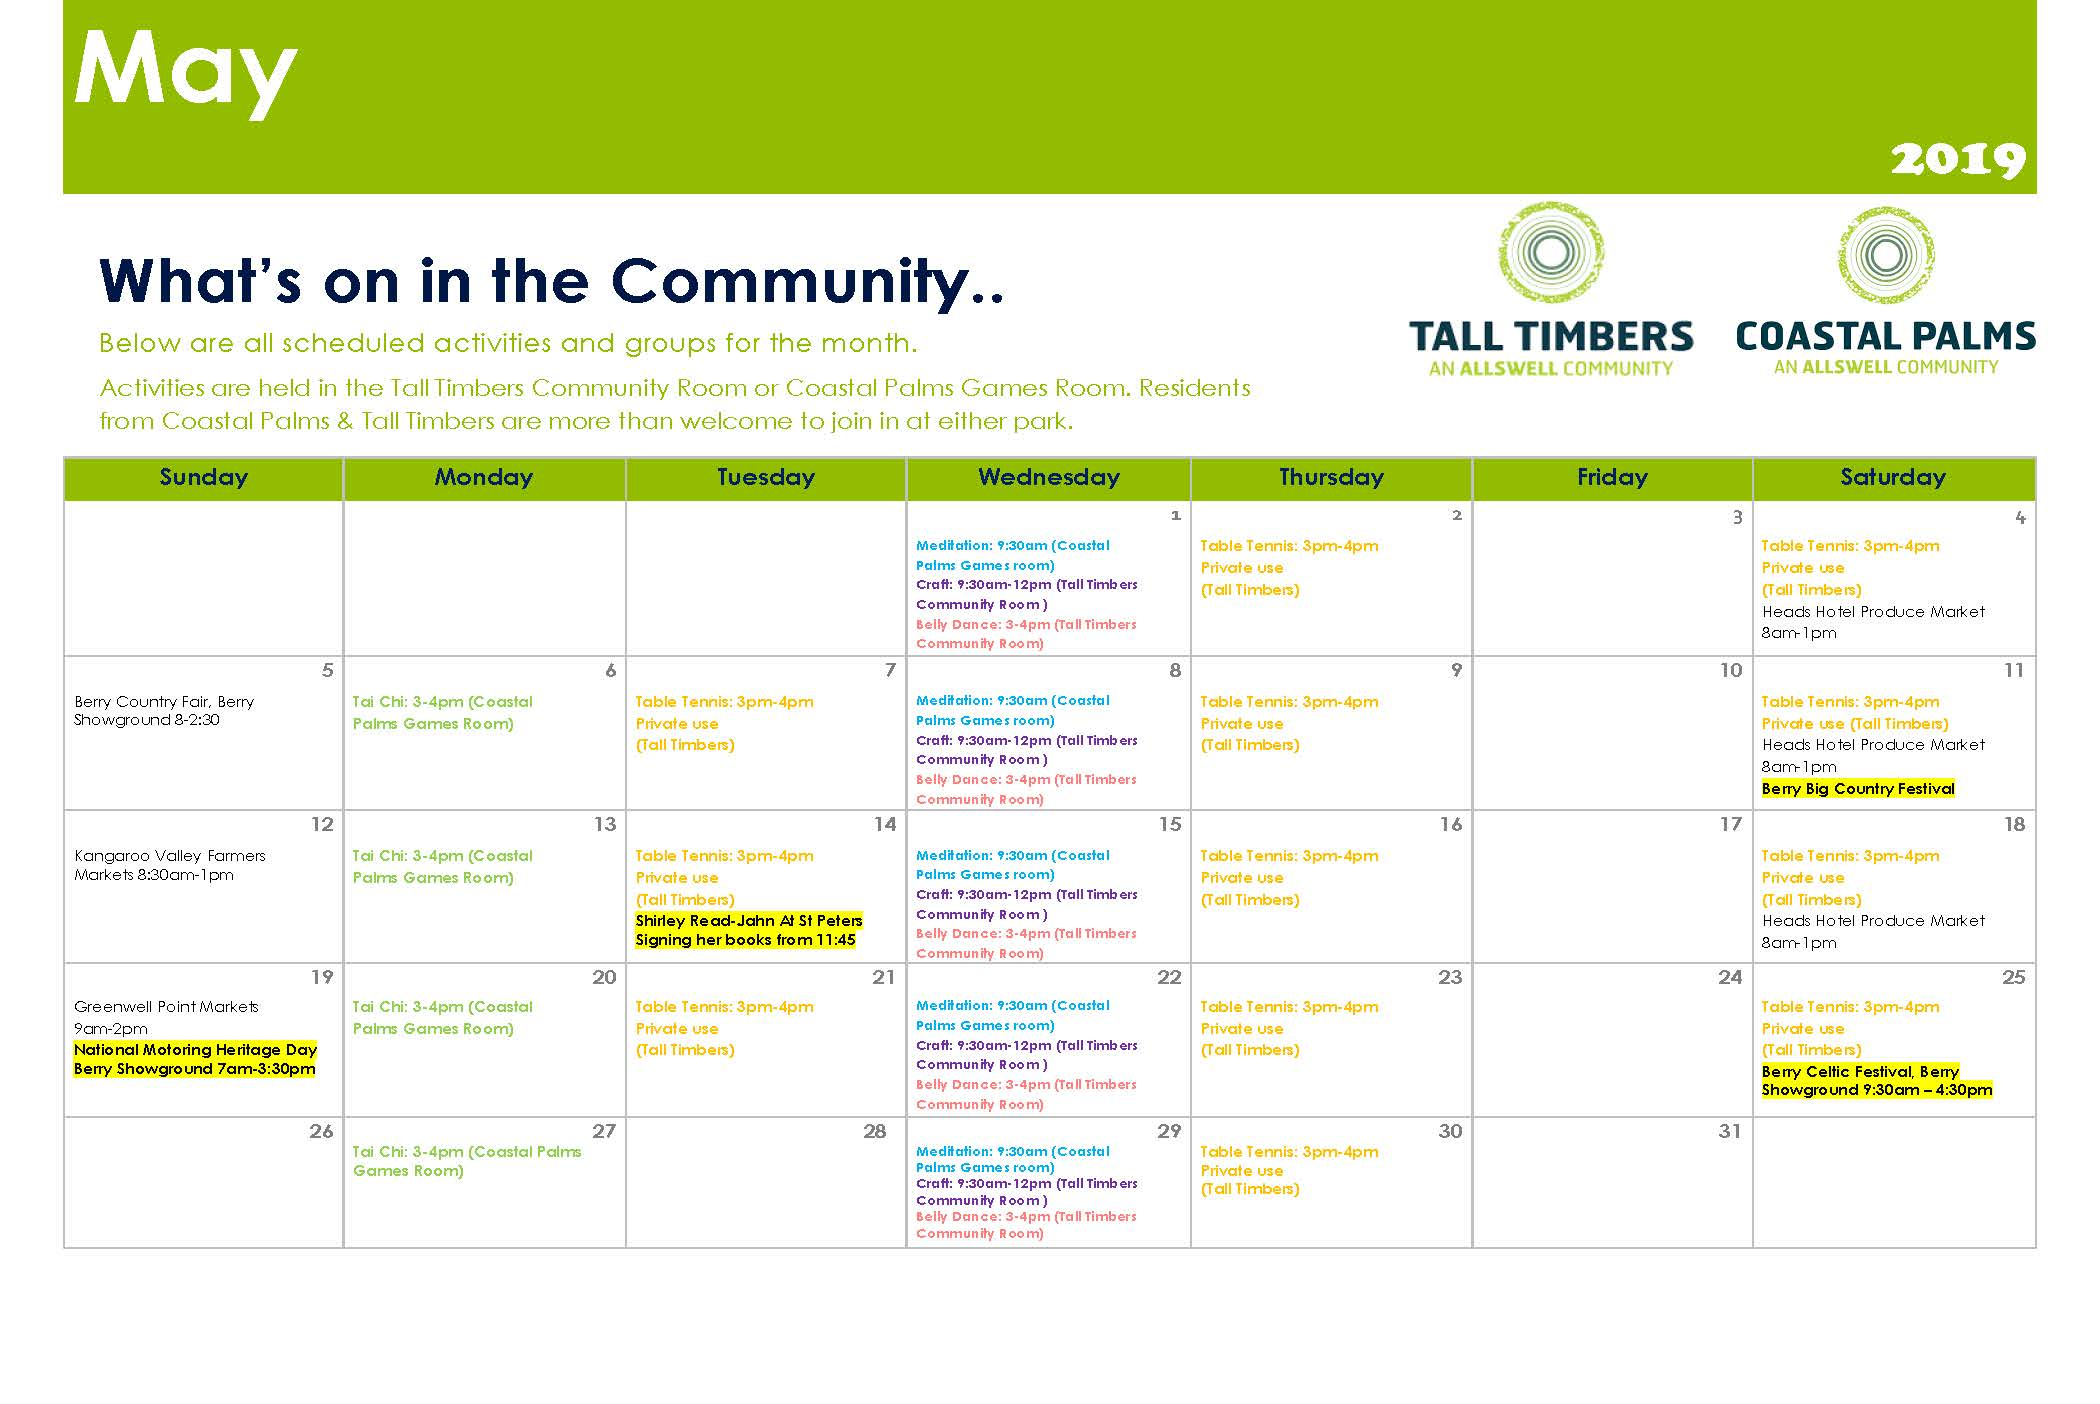 What's On at Tall Timbers and Coastal Palms - May